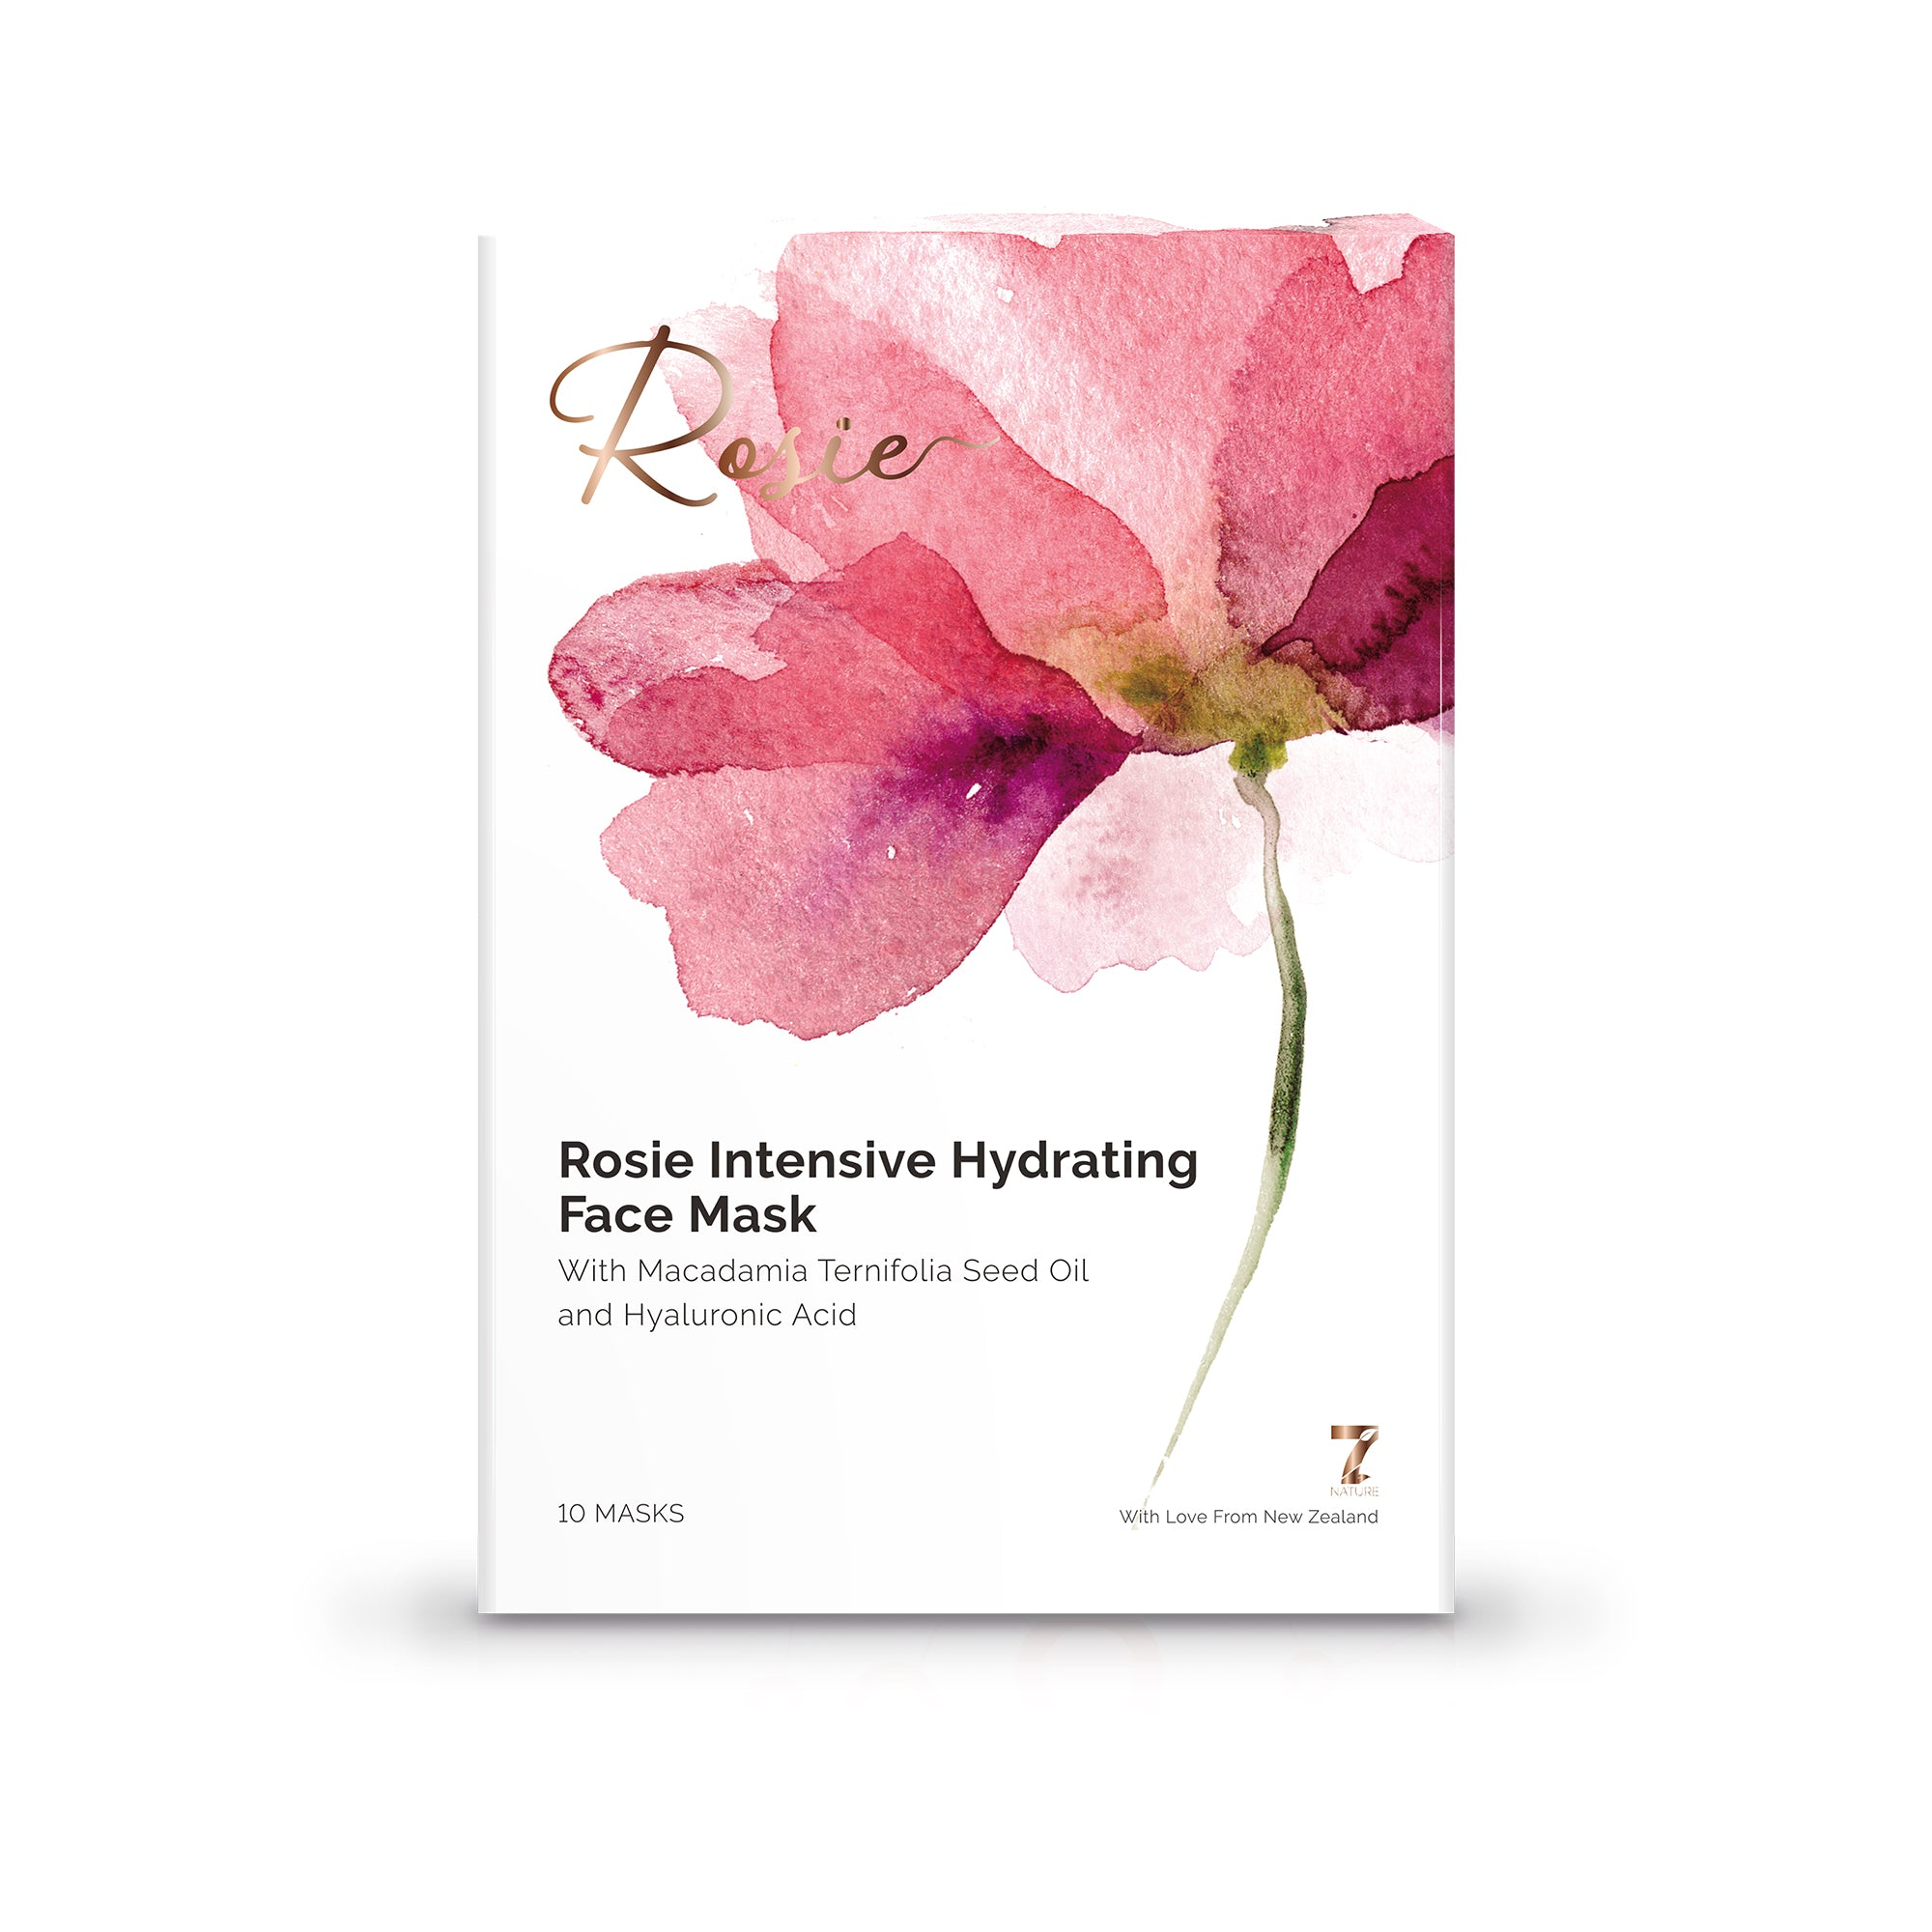 Rosie Intensive Hydrating Face Mask